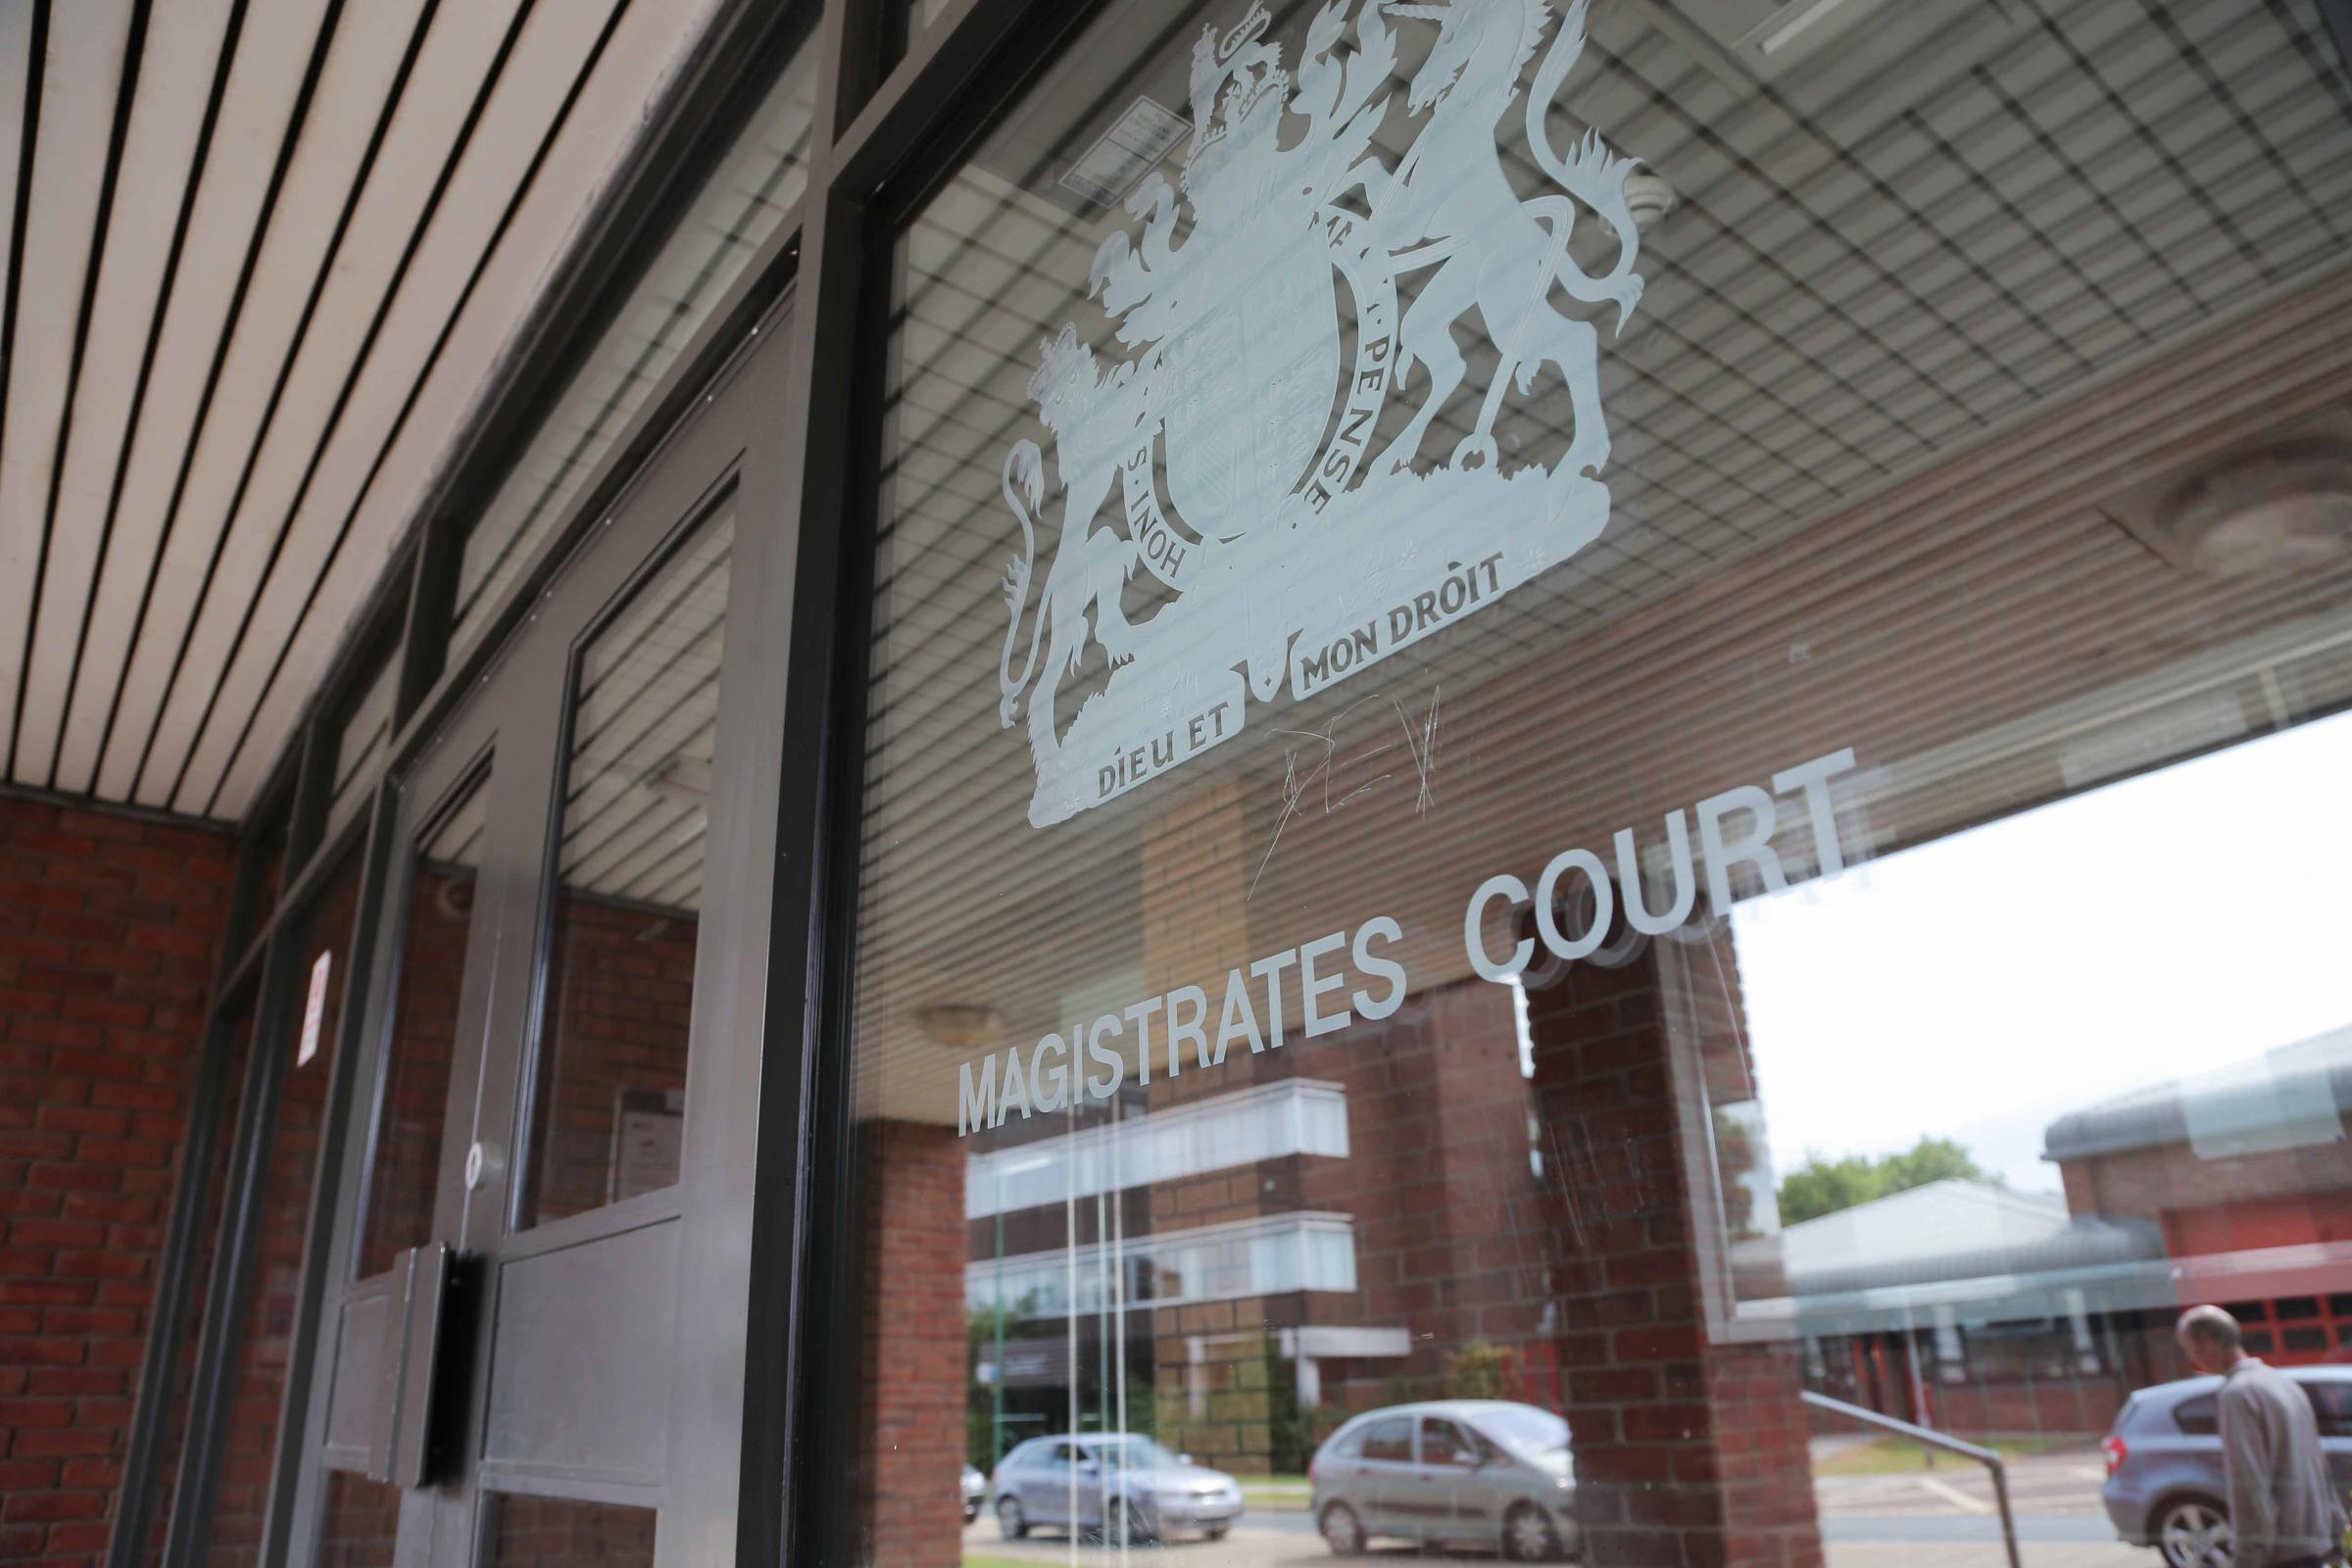 The case for Mr Cottrell, of 18 Sandringham Avenue, in Whickham, near Newcastle, was heard at Newton Aycliffe Magistrates' Court yesterday morning.